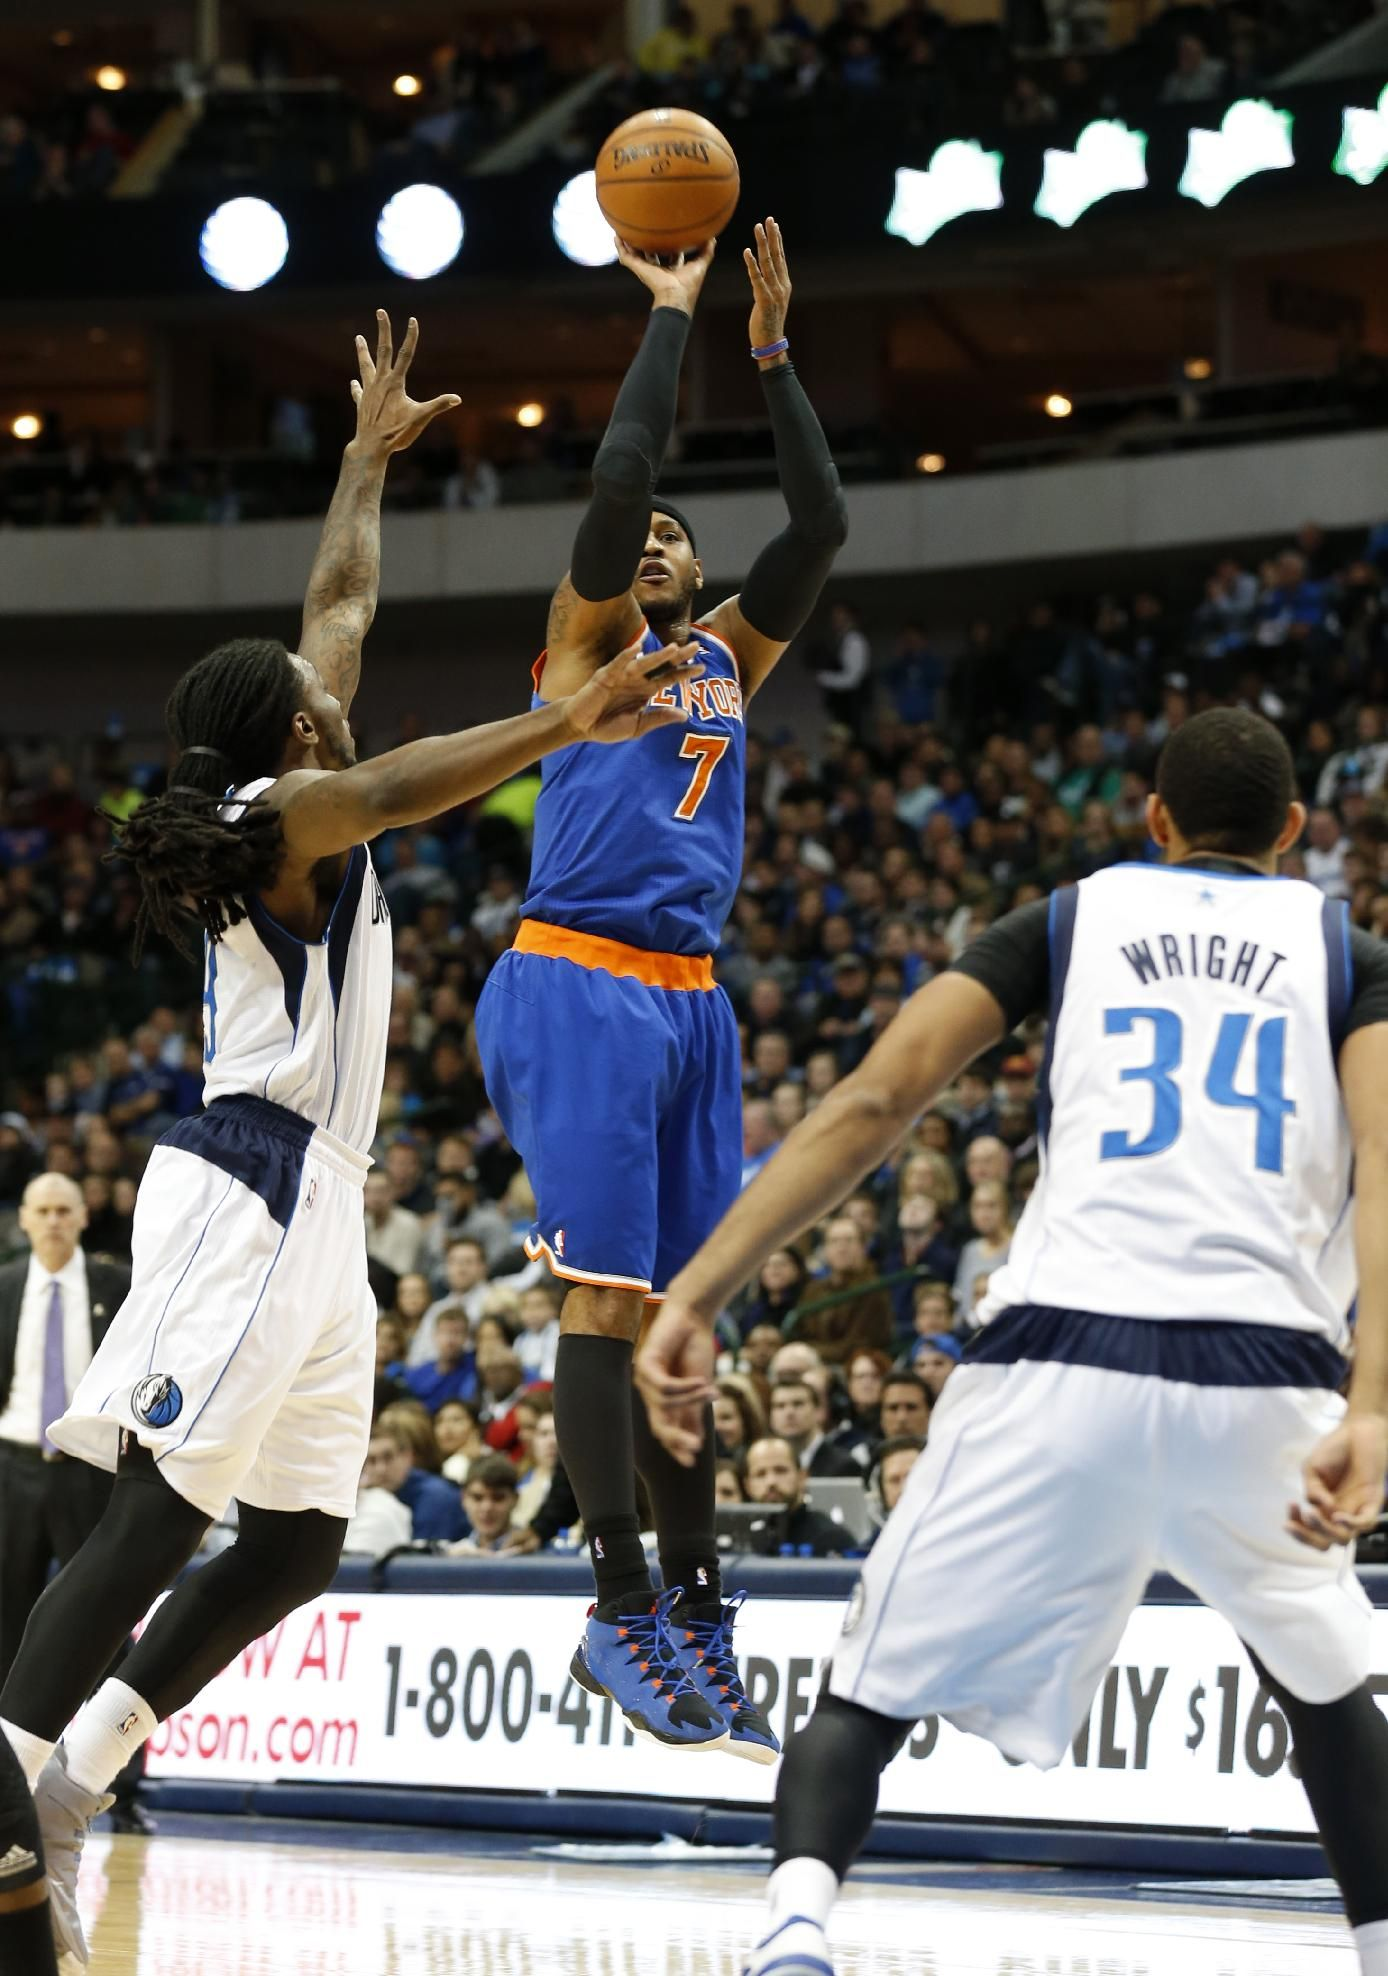 12d96932f09 Dallas Mavericks forwards Jae Crowder (9) and Brandan Wright (34) defends  as New York Knicks forward Carmelo Anthony (7) takes a shot during the  first half ...